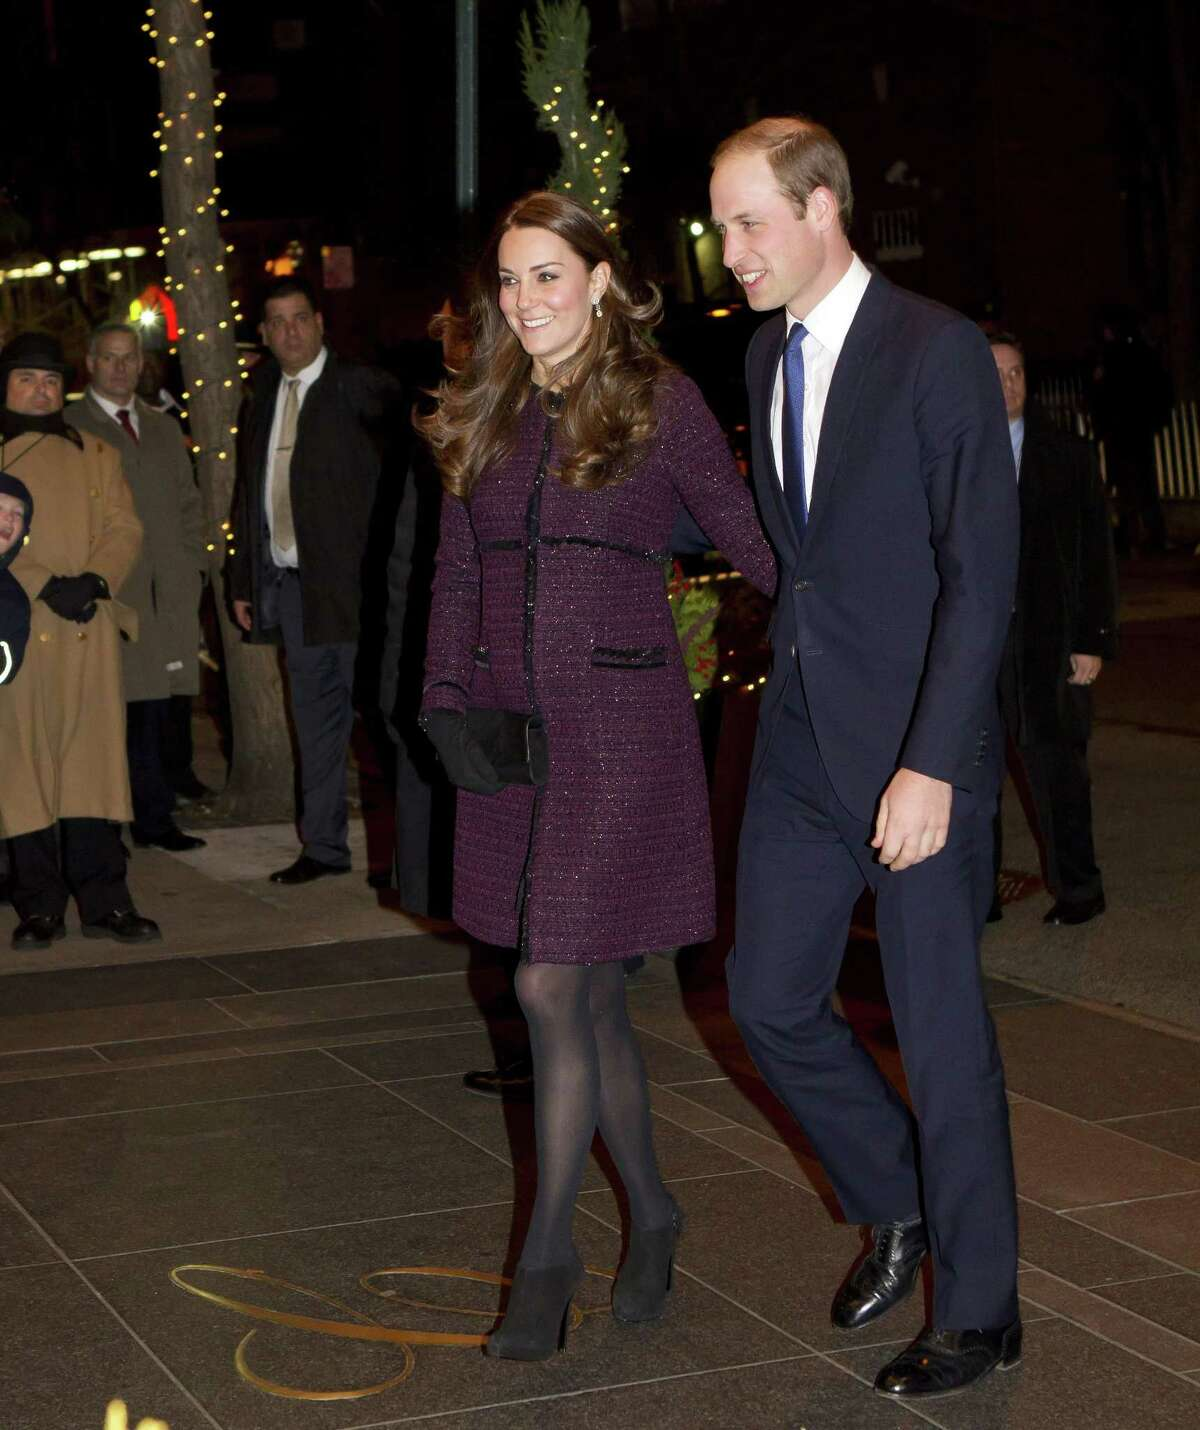 Kate, left, Duchess of Cambridge and Britain's Prince William arrive at The Carlyle hotel on Dec. 7, 2014, in New York.